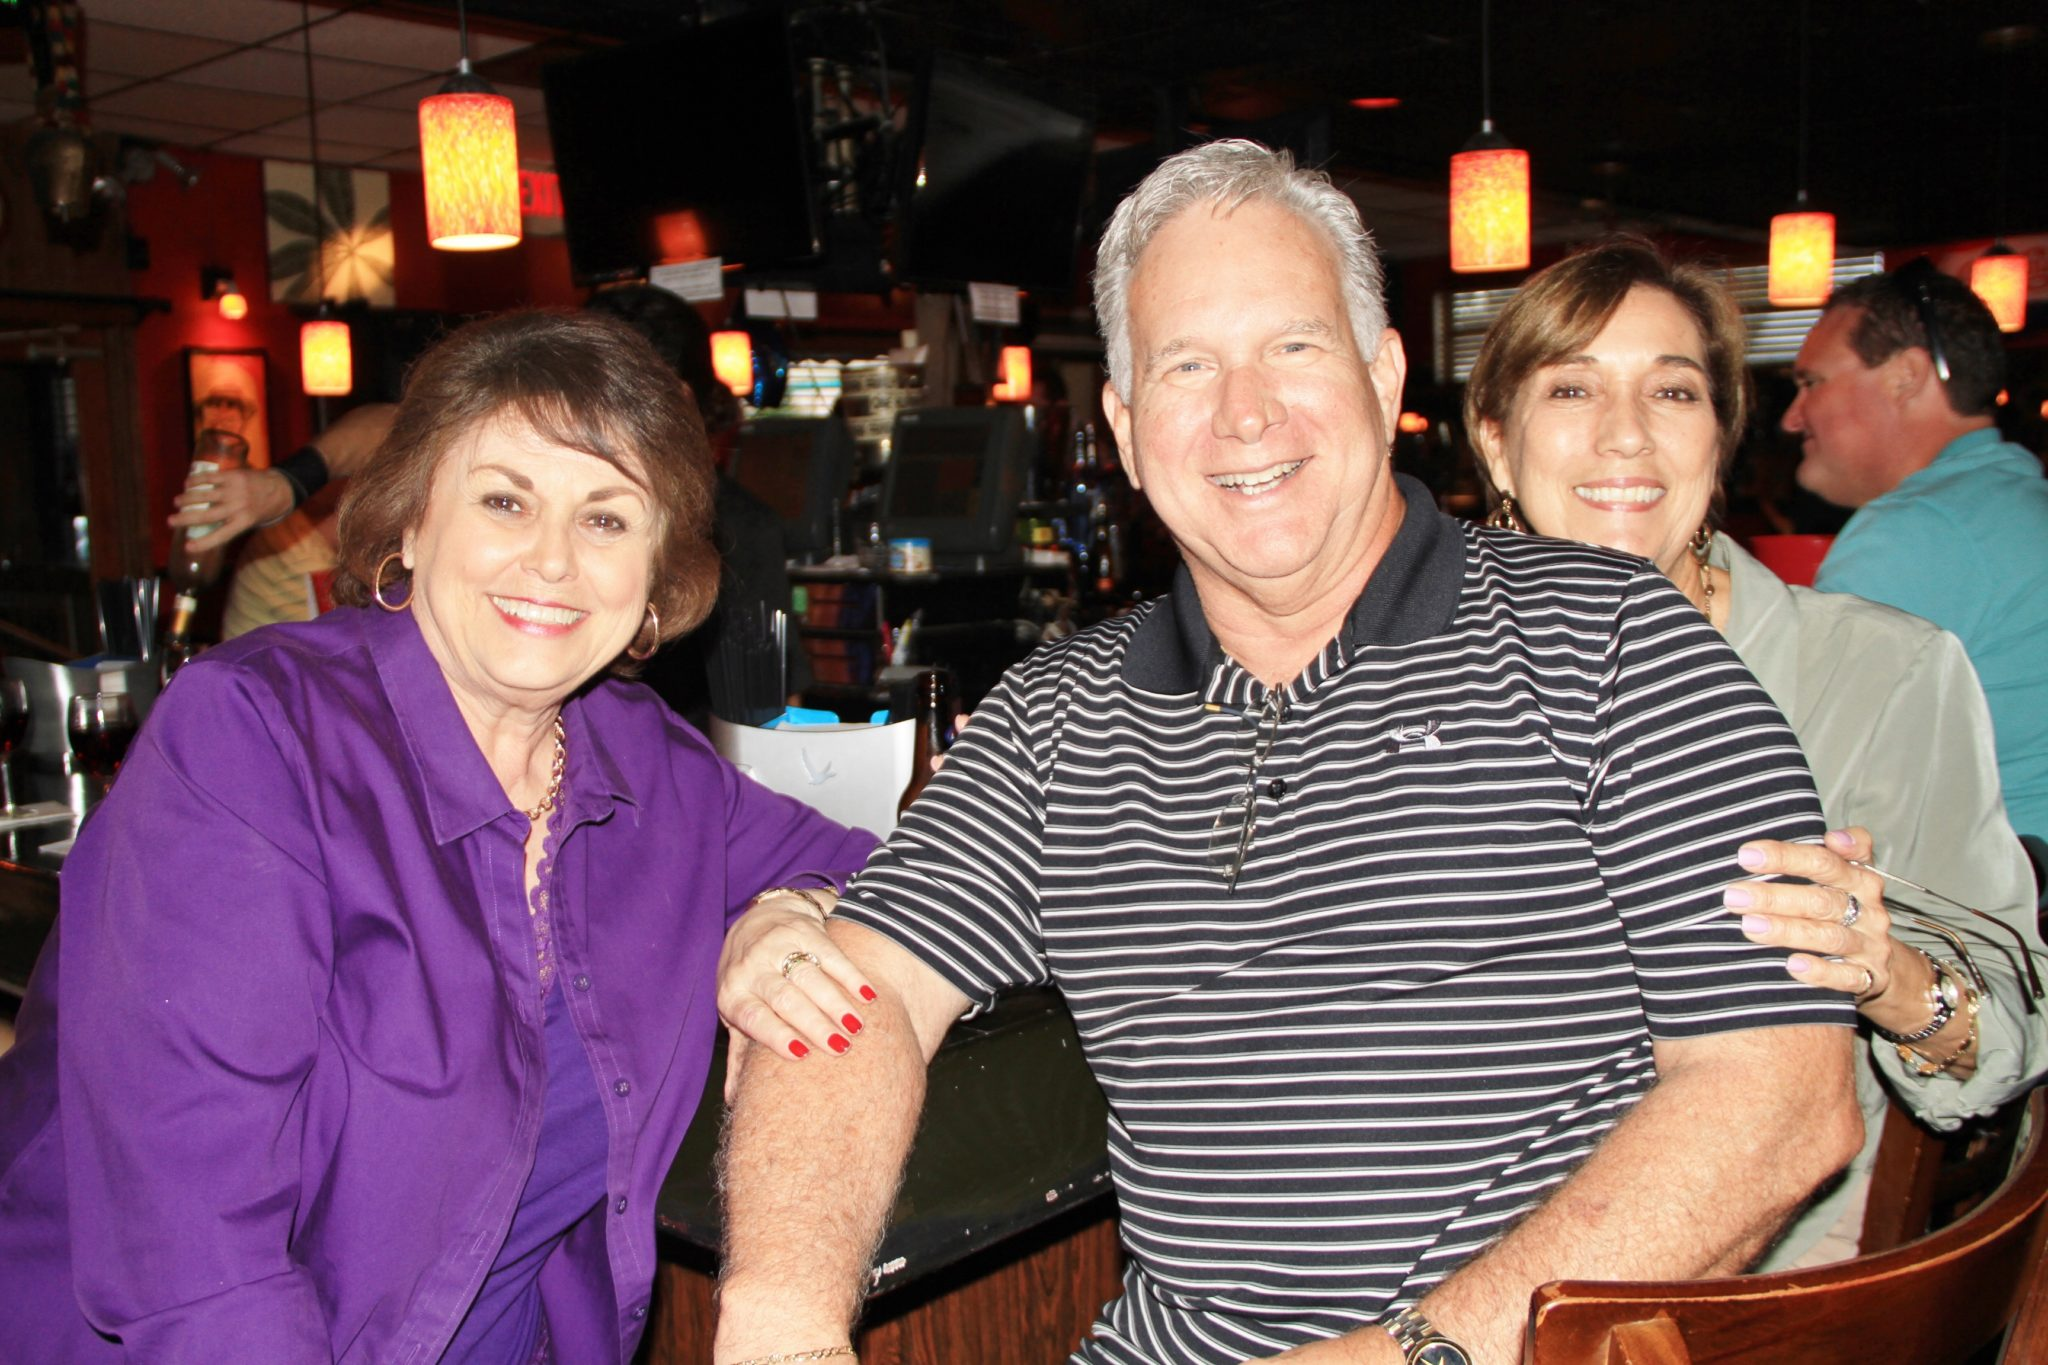 Sue and Sandra Barroso and Pat Labrada enjoy an evening out on the town.